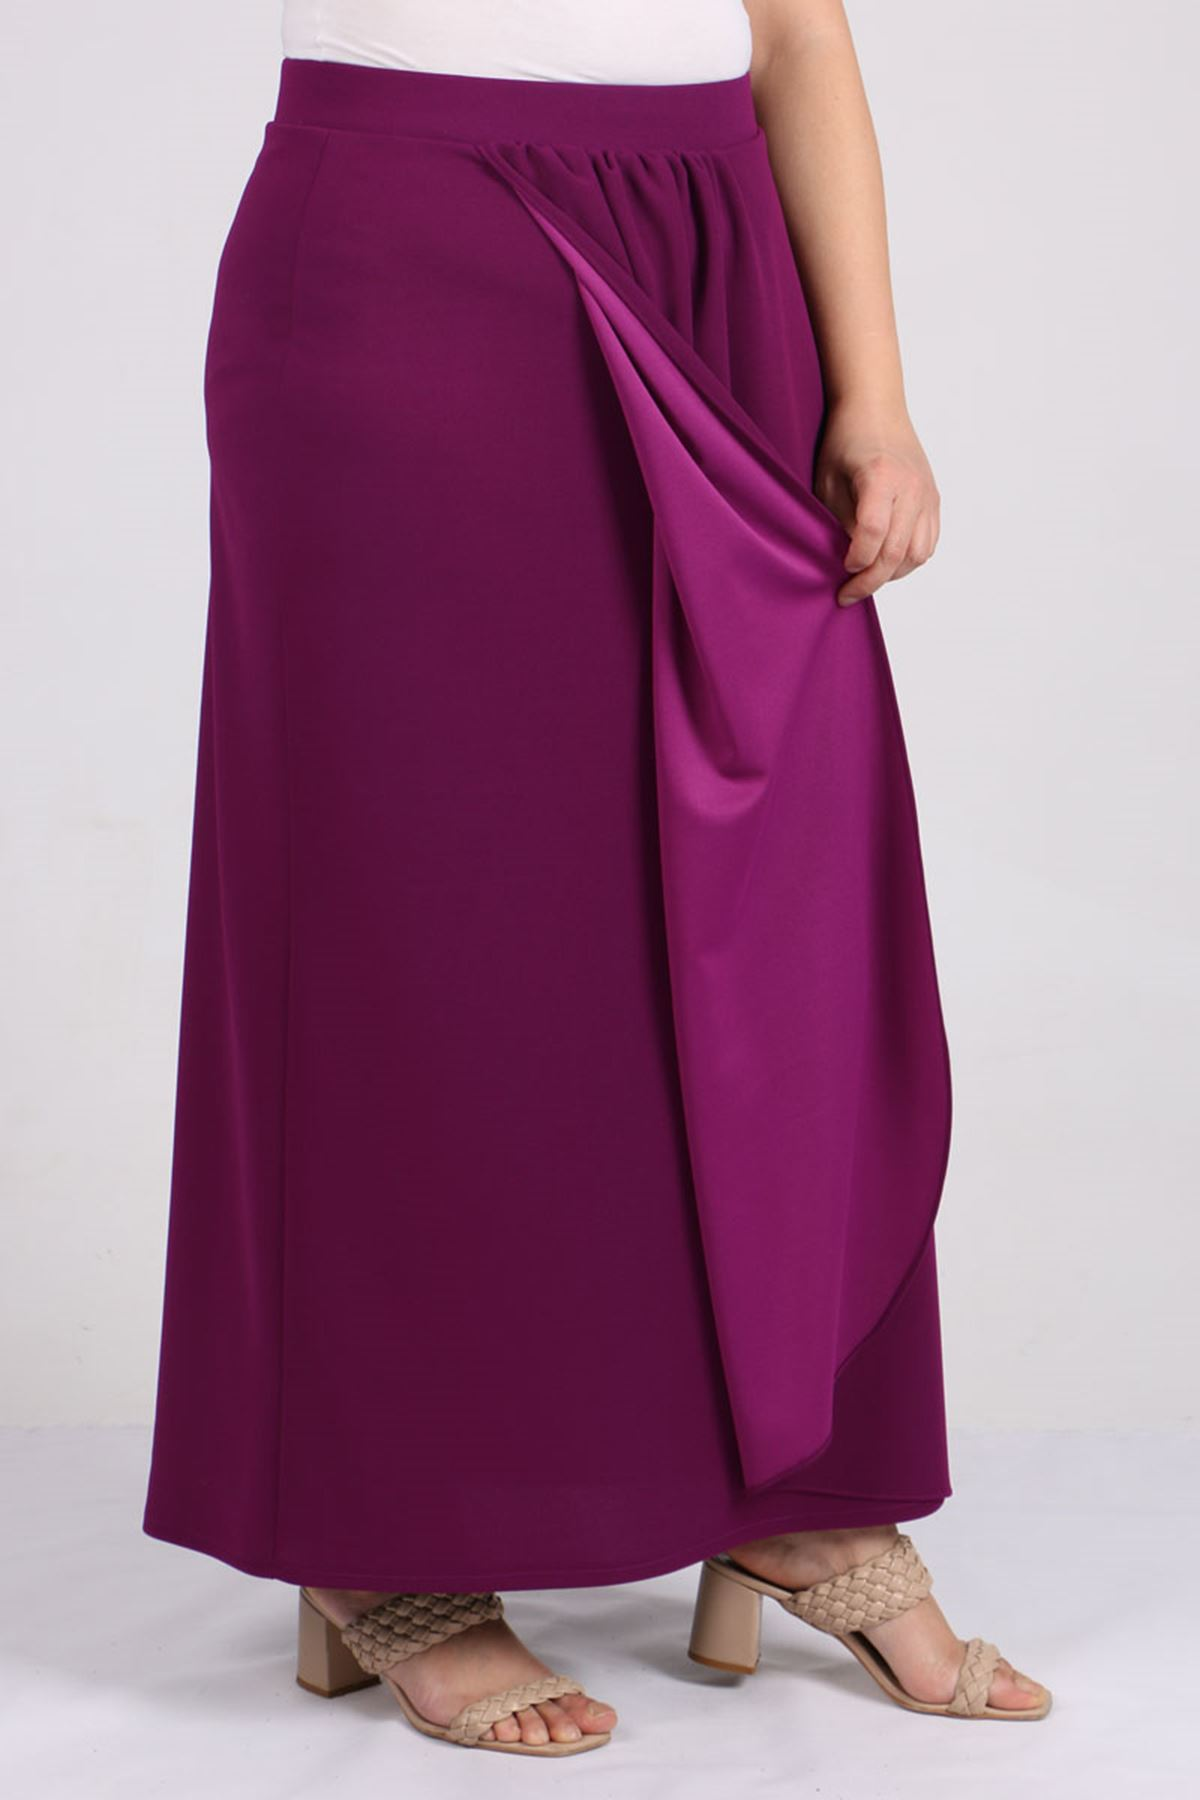 5044 Plus Size Front Gathered Skirt - Plum